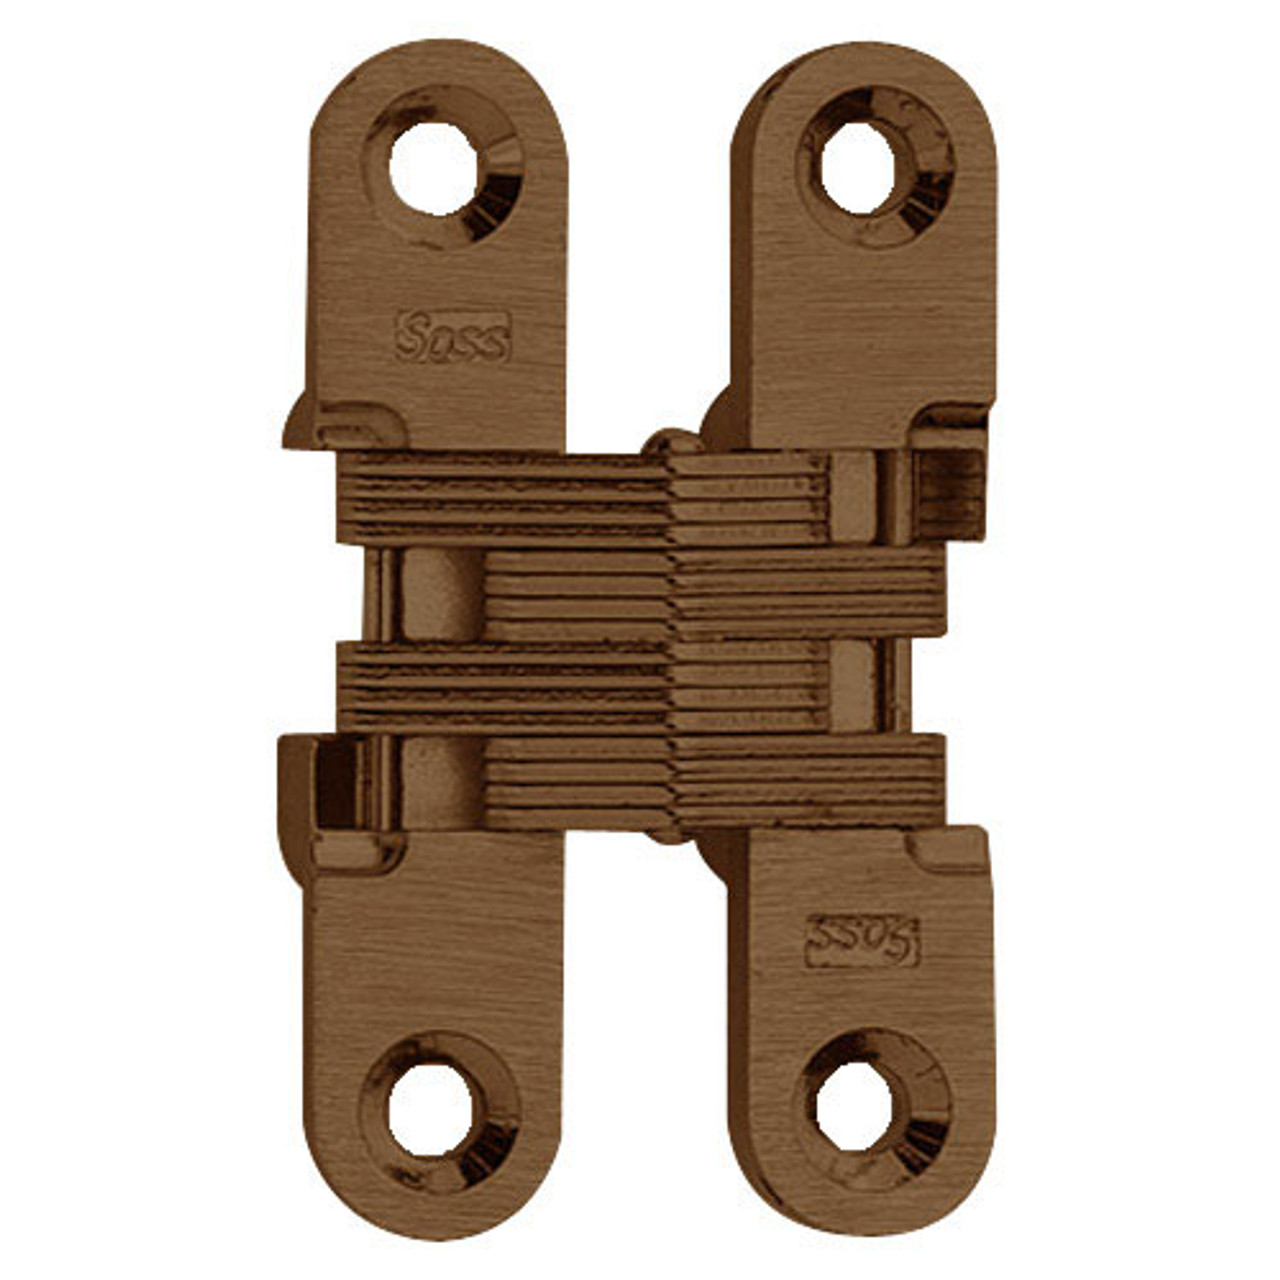 204C-US10BL Soss Invisible Hinge in Oil Rubbed Bronze Finish